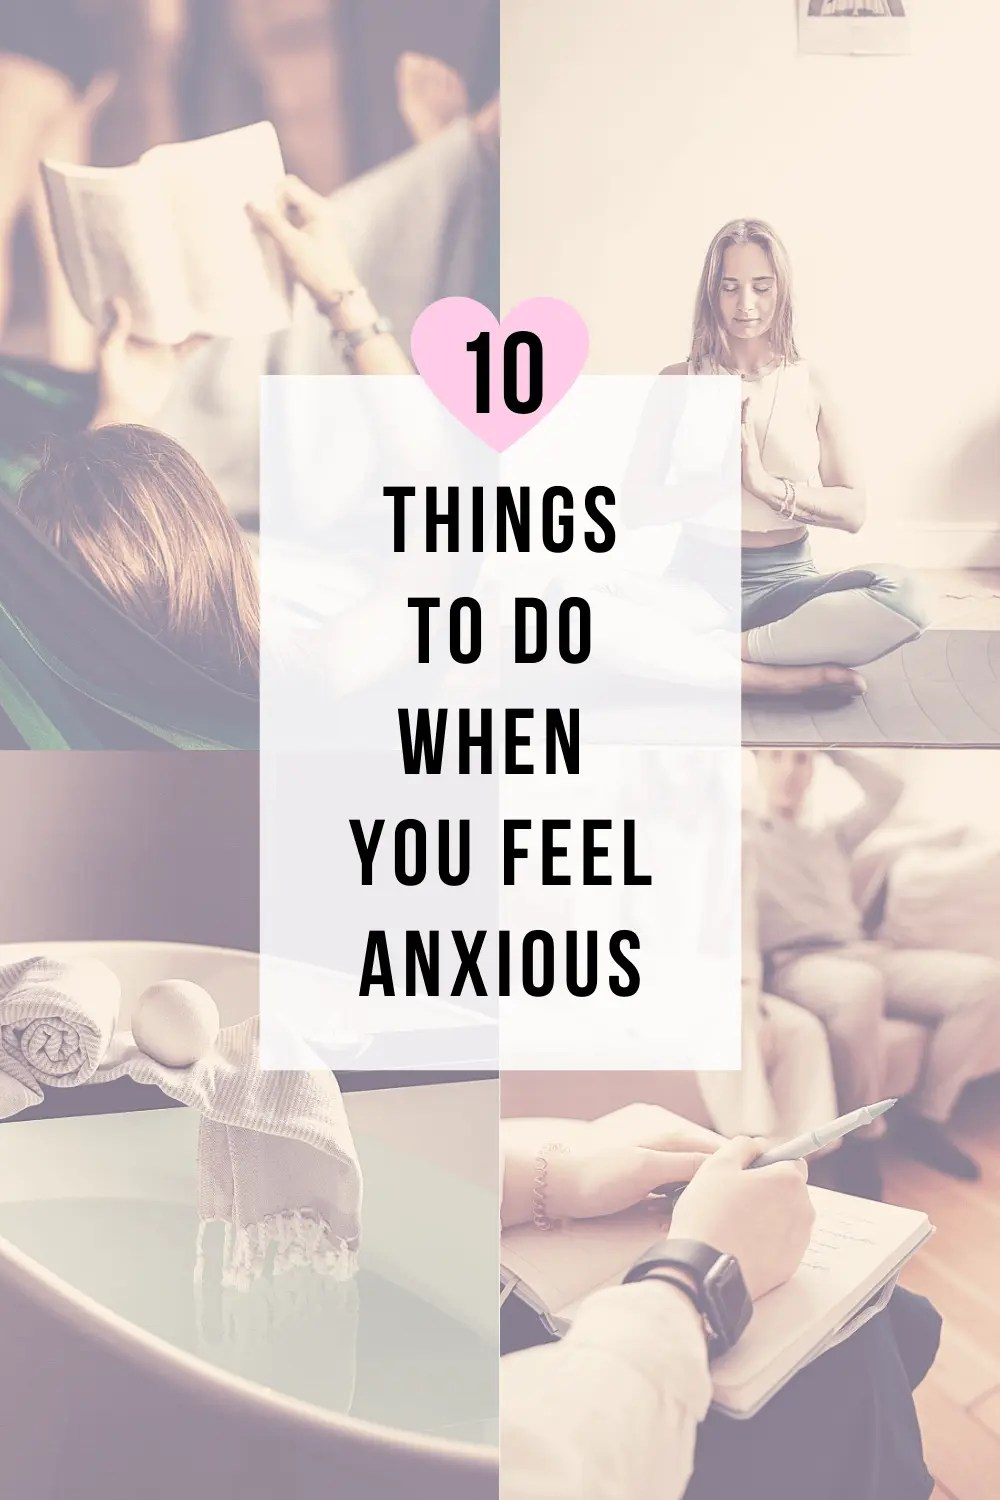 10 Things to do When You Feel Anxious | www.thevegasmom.com